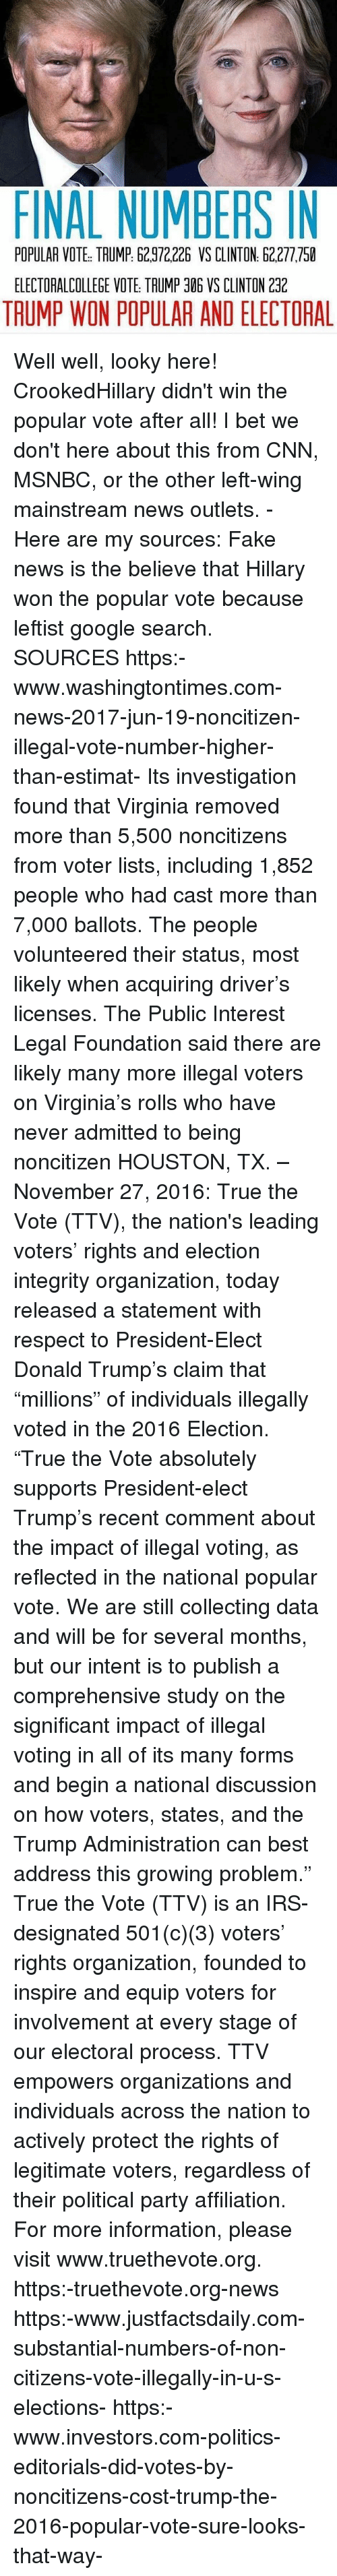 """cnn.com, Donald Trump, and Fake: FINAL NUMBERS IN  POPULAR VOTE TAUMP: 62.972,226 VS CLINTON 62.277,750  ELECTORALCOLLEGE VOTE TRUMP 306 VS CLINTON 2312  TAUMP WON POPULAR AND ELECTORAL Well well, looky here! CrookedHillary didn't win the popular vote after all! I bet we don't here about this from CNN, MSNBC, or the other left-wing mainstream news outlets. - Here are my sources: Fake news is the believe that Hillary won the popular vote because leftist google search. SOURCES https:-www.washingtontimes.com-news-2017-jun-19-noncitizen-illegal-vote-number-higher-than-estimat- Its investigation found that Virginia removed more than 5,500 noncitizens from voter lists, including 1,852 people who had cast more than 7,000 ballots. The people volunteered their status, most likely when acquiring driver's licenses. The Public Interest Legal Foundation said there are likely many more illegal voters on Virginia's rolls who have never admitted to being noncitizen HOUSTON, TX. – November 27, 2016: True the Vote (TTV), the nation's leading voters' rights and election integrity organization, today released a statement with respect to President-Elect Donald Trump's claim that """"millions"""" of individuals illegally voted in the 2016 Election. """"True the Vote absolutely supports President-elect Trump's recent comment about the impact of illegal voting, as reflected in the national popular vote. We are still collecting data and will be for several months, but our intent is to publish a comprehensive study on the significant impact of illegal voting in all of its many forms and begin a national discussion on how voters, states, and the Trump Administration can best address this growing problem."""" True the Vote (TTV) is an IRS-designated 501(c)(3) voters' rights organization, founded to inspire and equip voters for involvement at every stage of our electoral process. TTV empowers organizations and individuals across the nation to actively protect the rights of legitimate voters, regardless of """